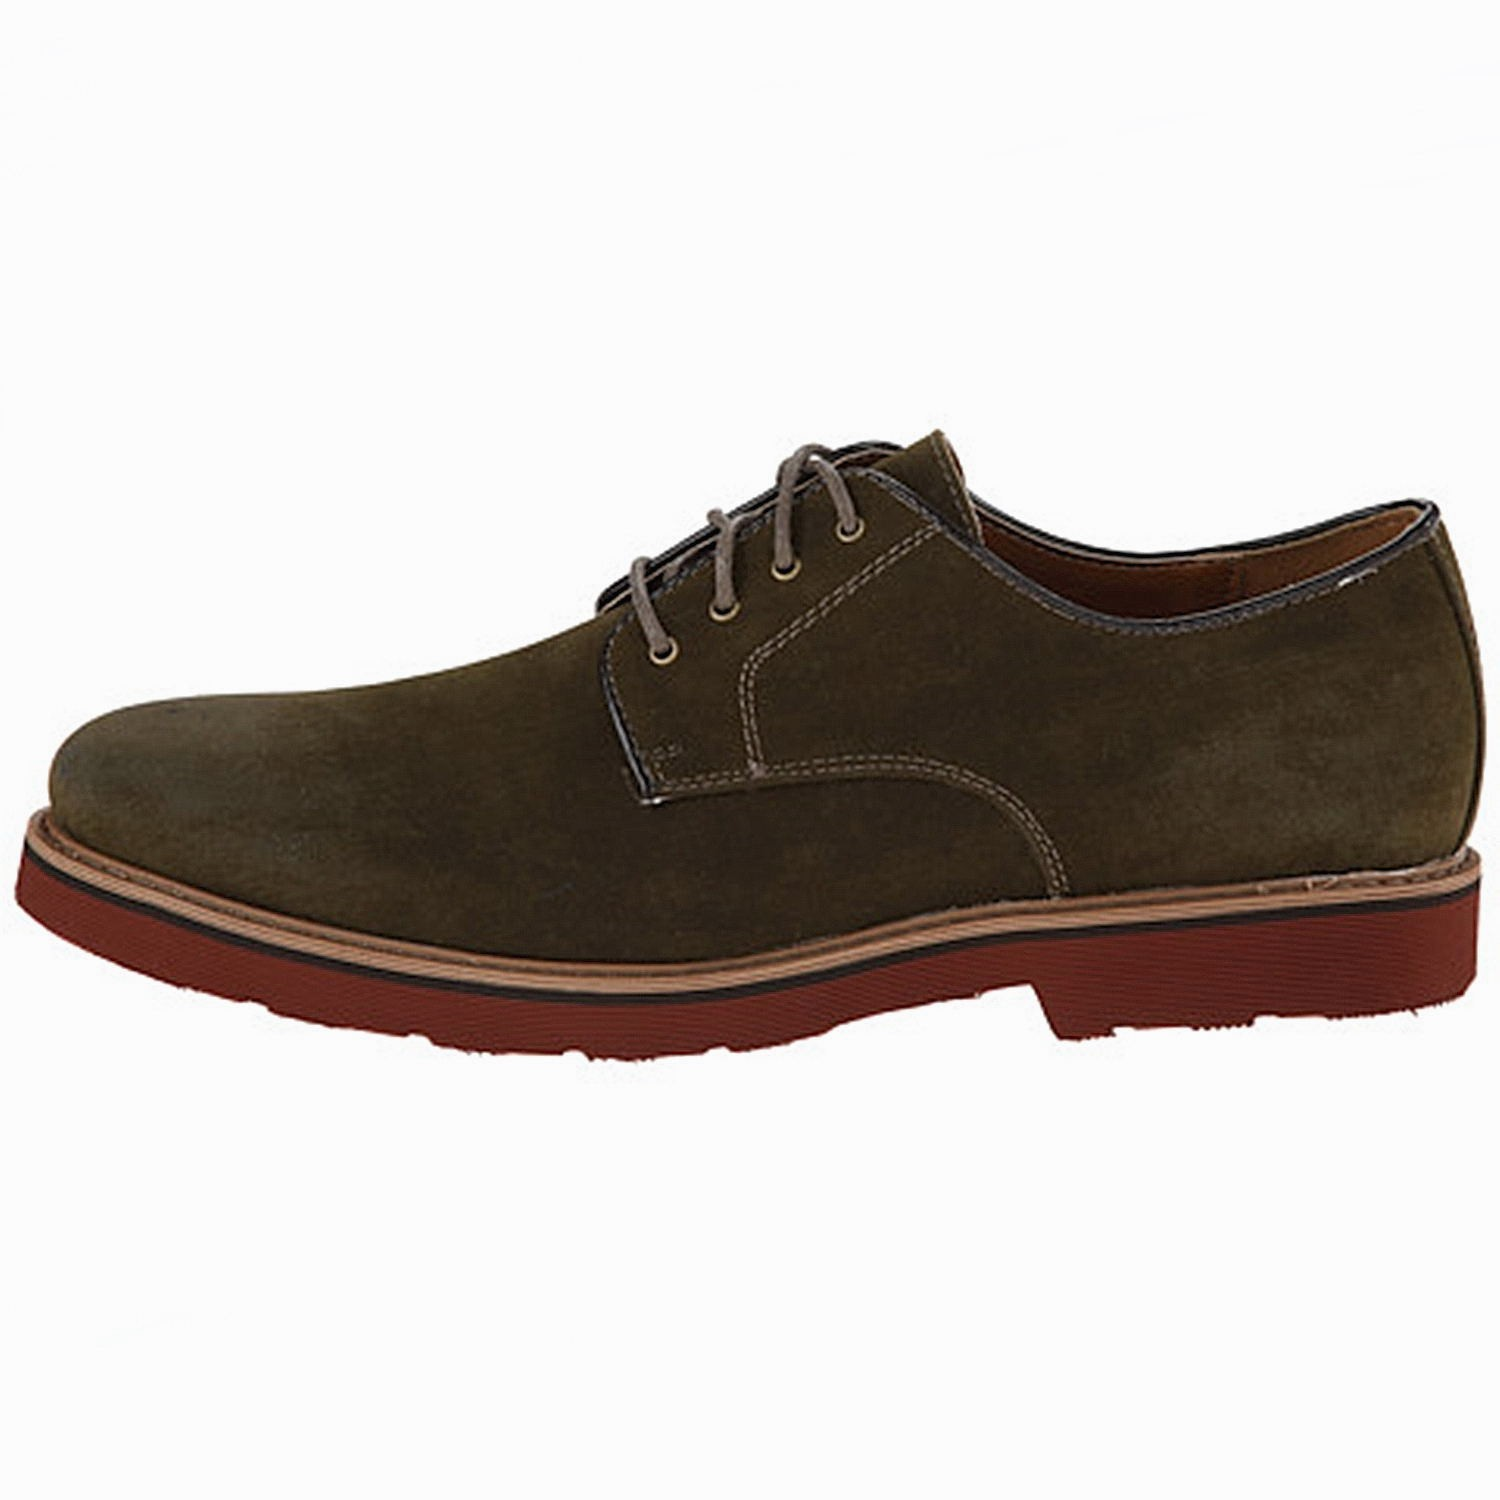 gbx mens classic oxfords lace up velvet shoes casual